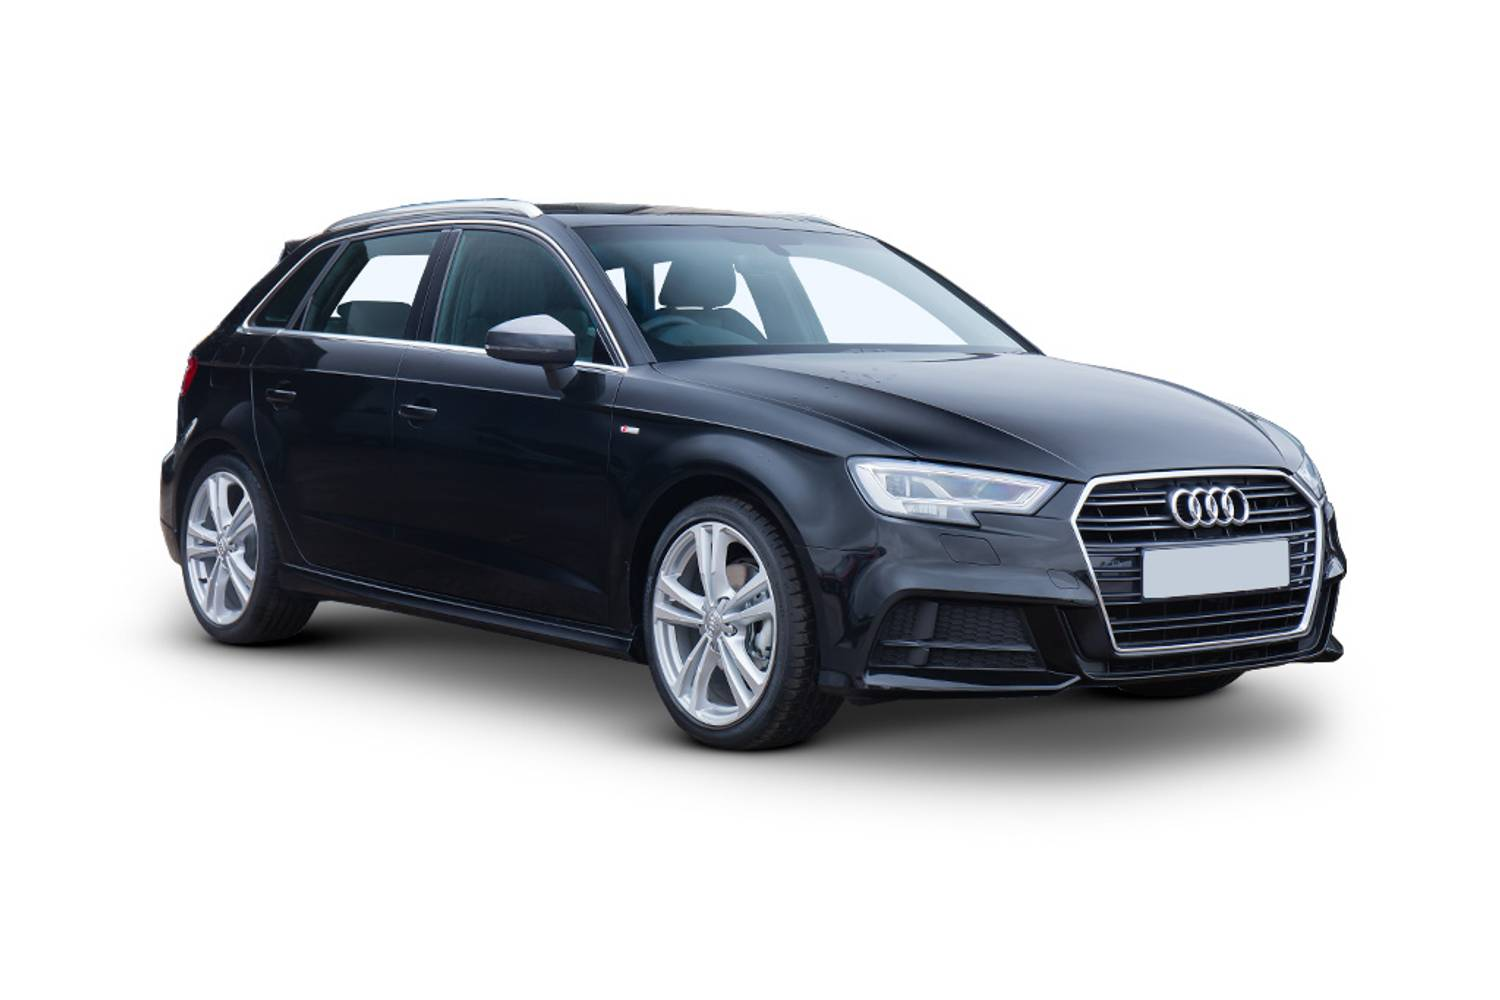 new audi a3 diesel sportback 1 6 tdi 116 ps sport 5 door 2017 for sale. Black Bedroom Furniture Sets. Home Design Ideas